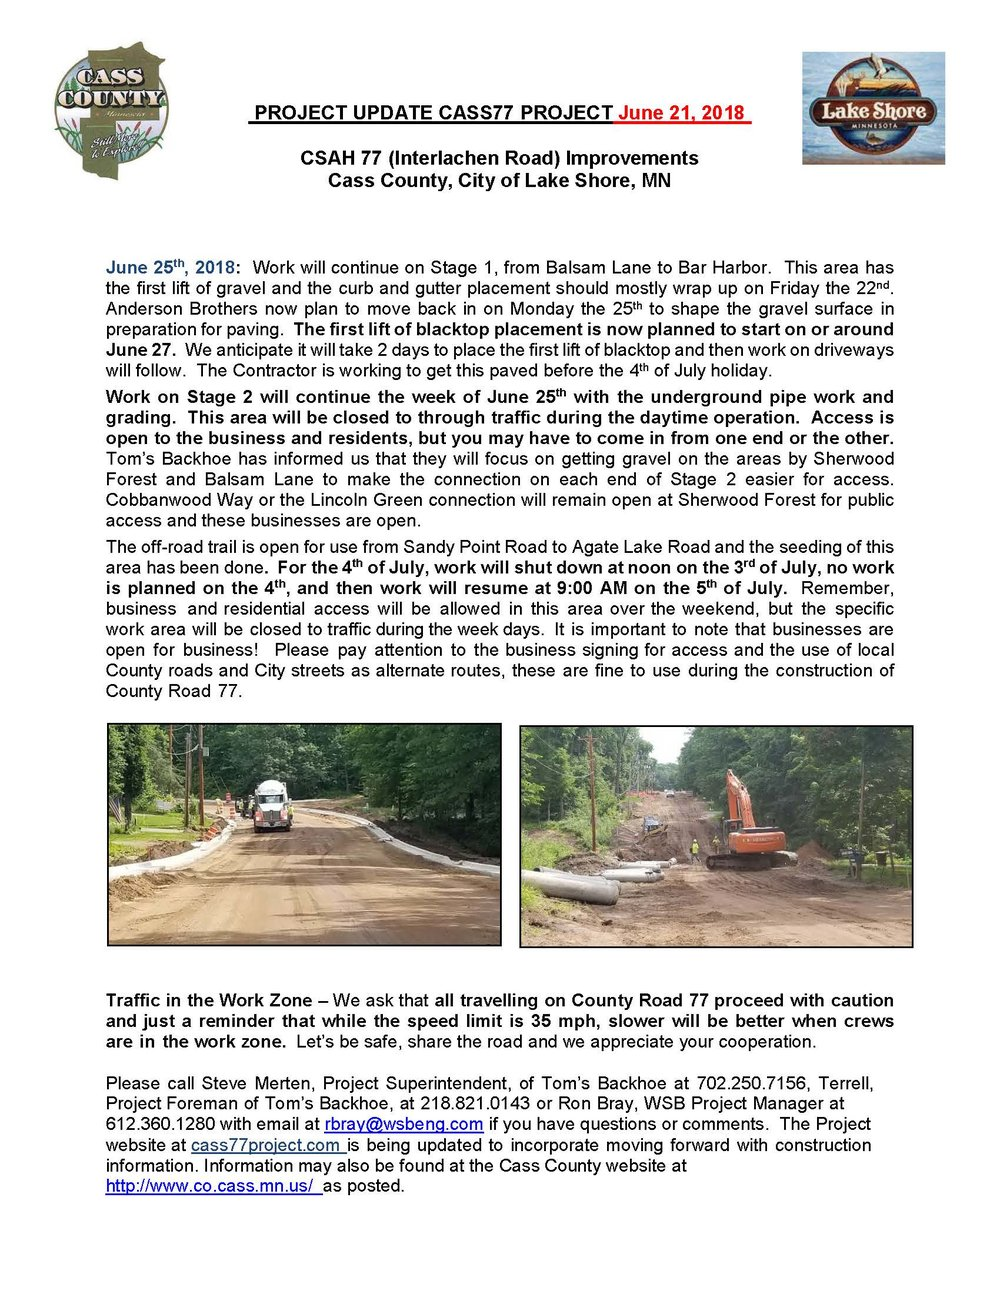 Cass County CSAH 77 Project update June 21 2018.jpg